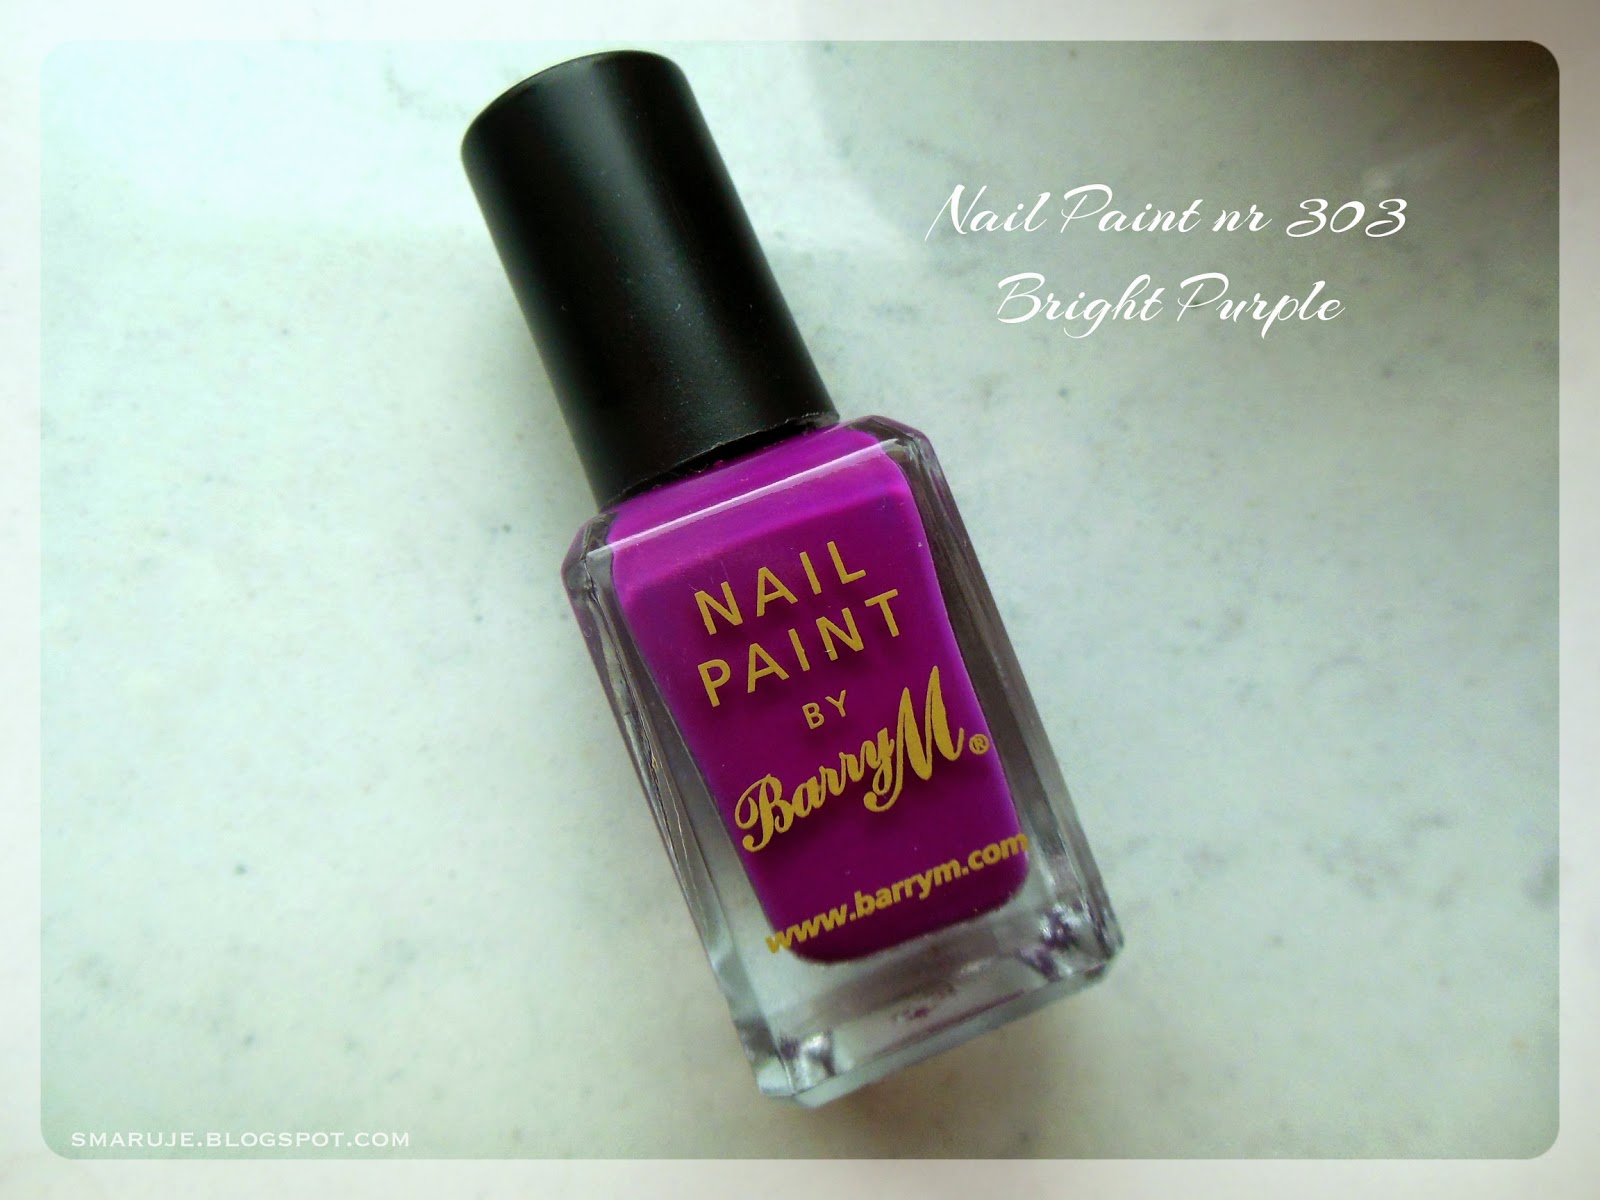 Szałowy fiolet od BarryM: Nail Paint nr 303 Bright Purple